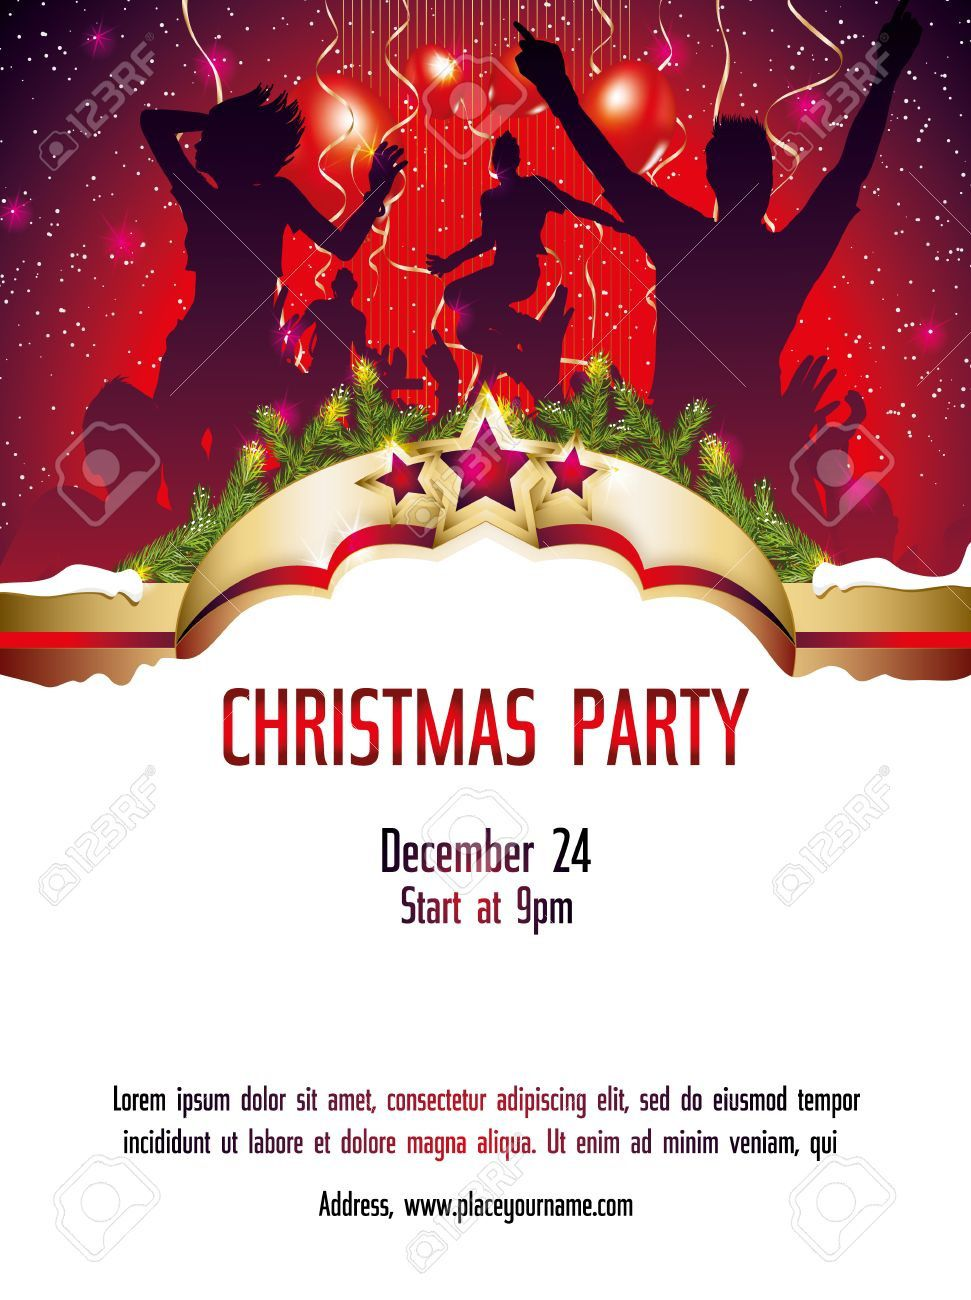 002 Shocking Christma Party Invitation Template High Definition  Funny Free Download Word CardFull